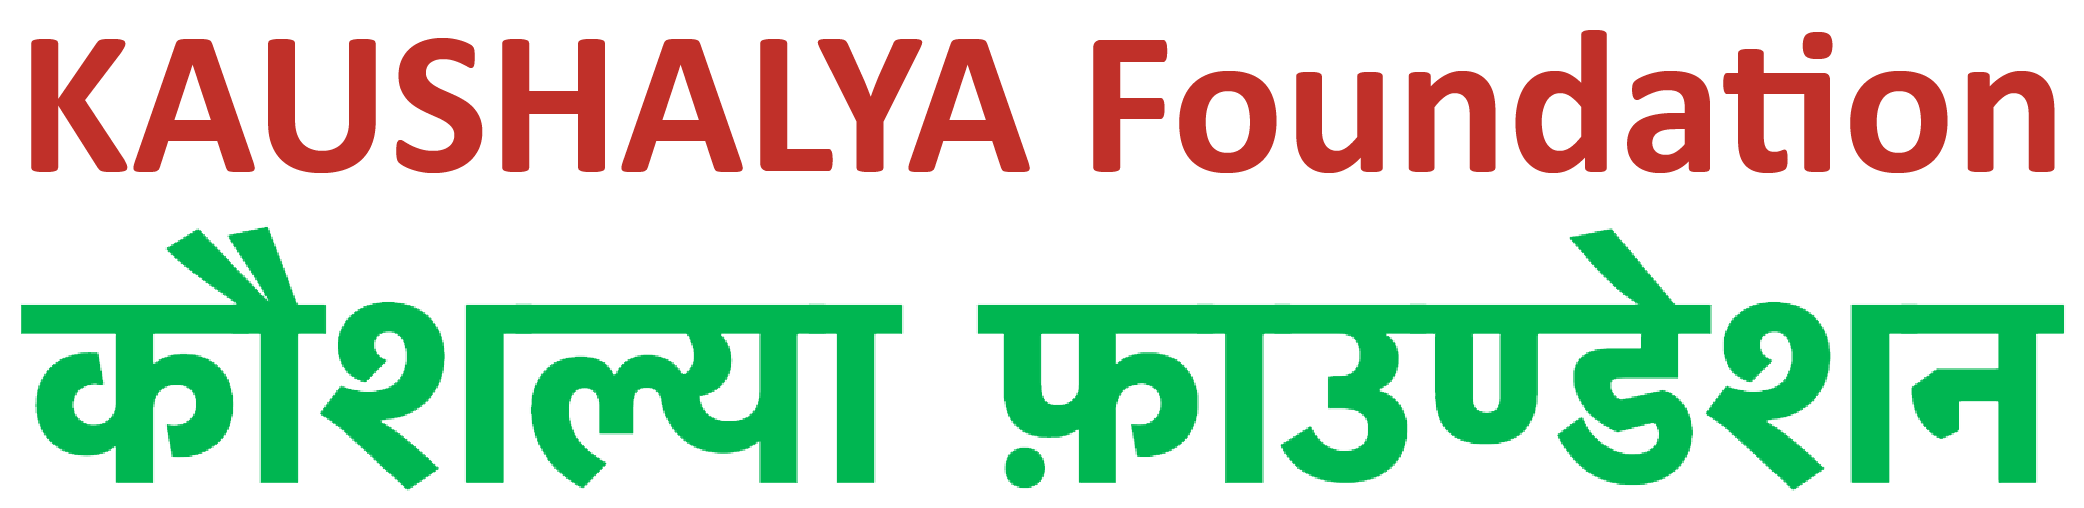 KAUSHALYA Foundation